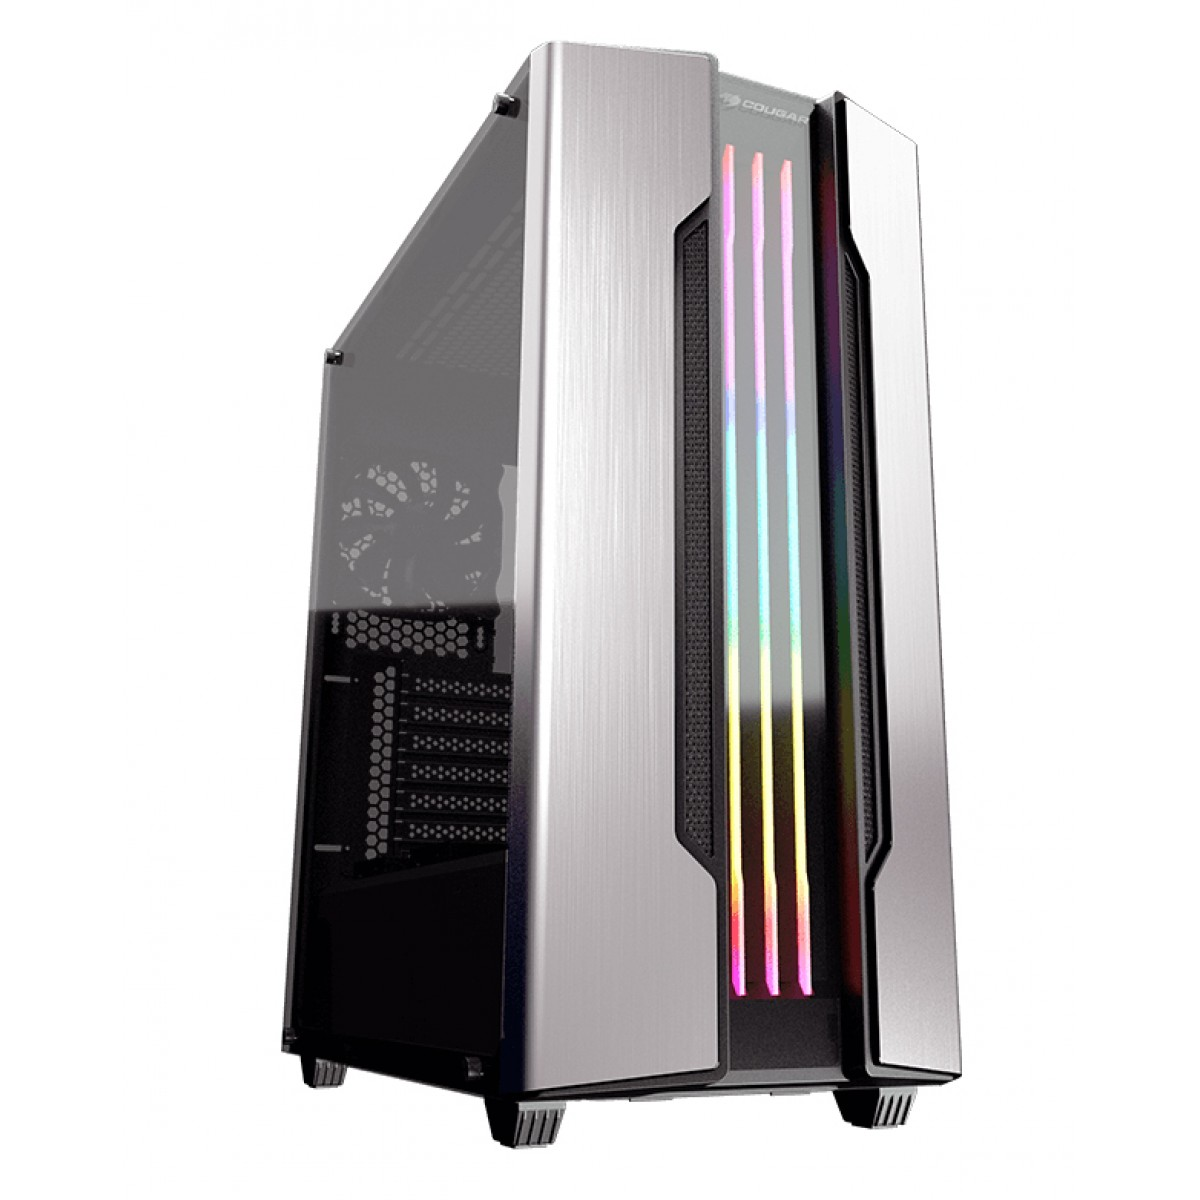 PC Gamer T-Power Captain Lvl-3 Intel I7 9700K 3.60GHz / Radeon RX 5700 XT 8GB / 16GB DDR4 / HD 1TB / 600W